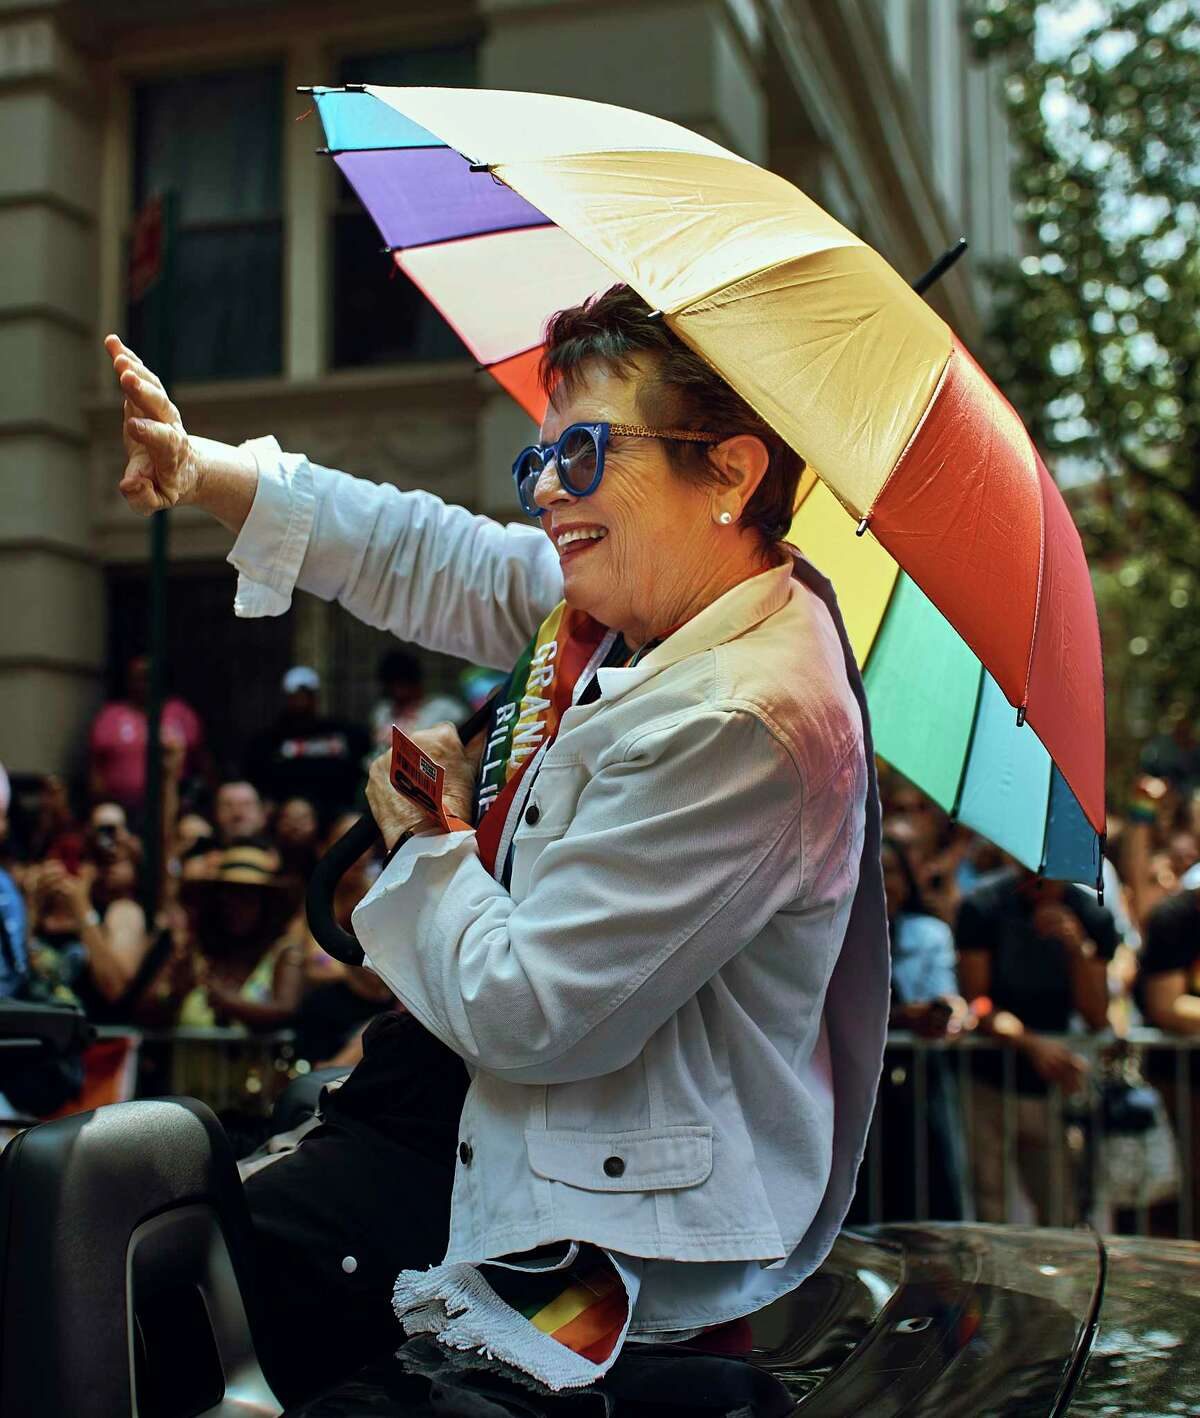 Tennis legend Billie Jean King, one of the grand marshals, waves to the crowd during the New York City Pride Parade, Sunday, June 24, 2018.